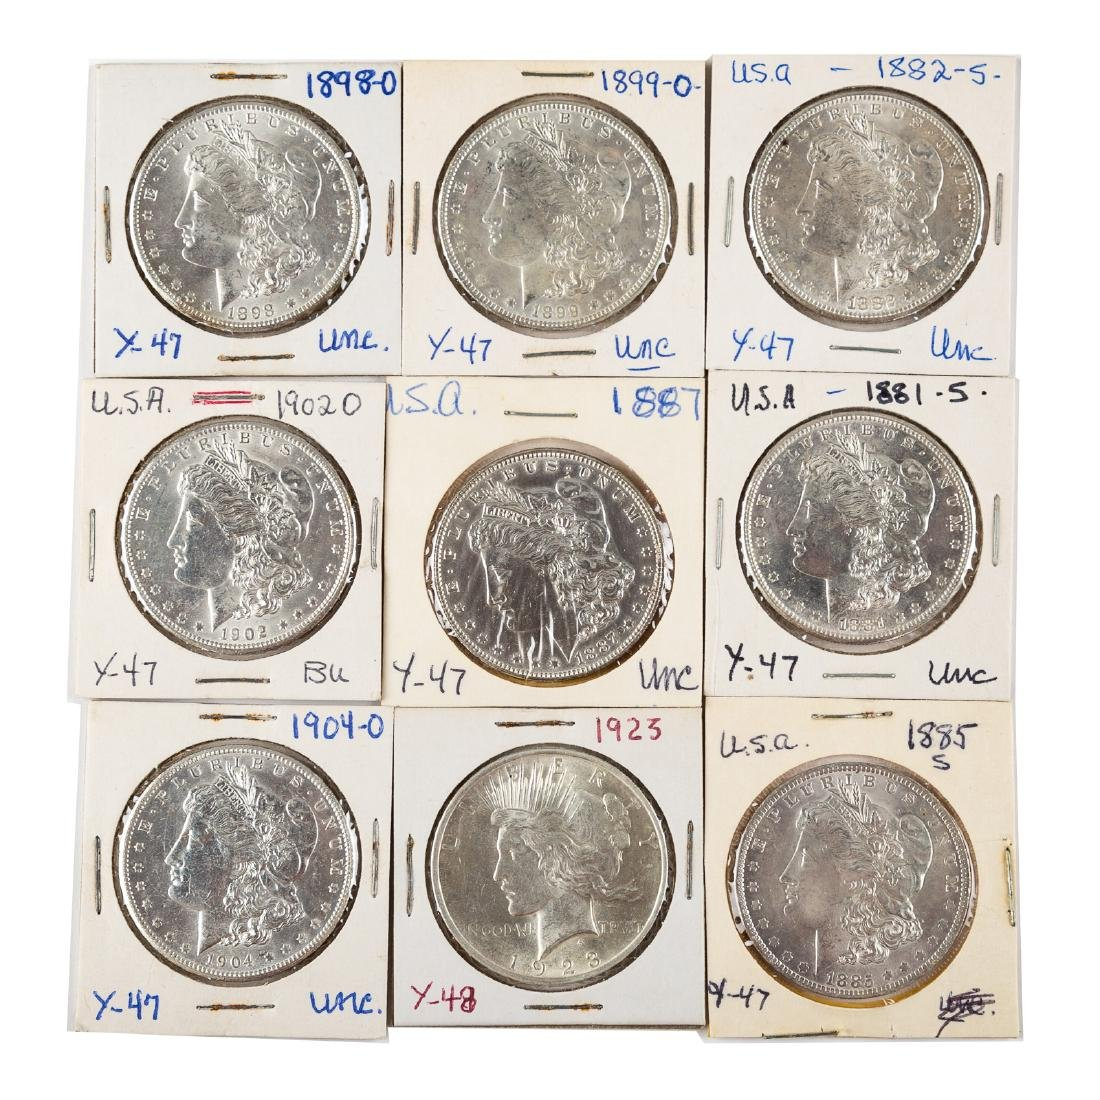 [US] Nine Uncirculated/Better Silver Dollars